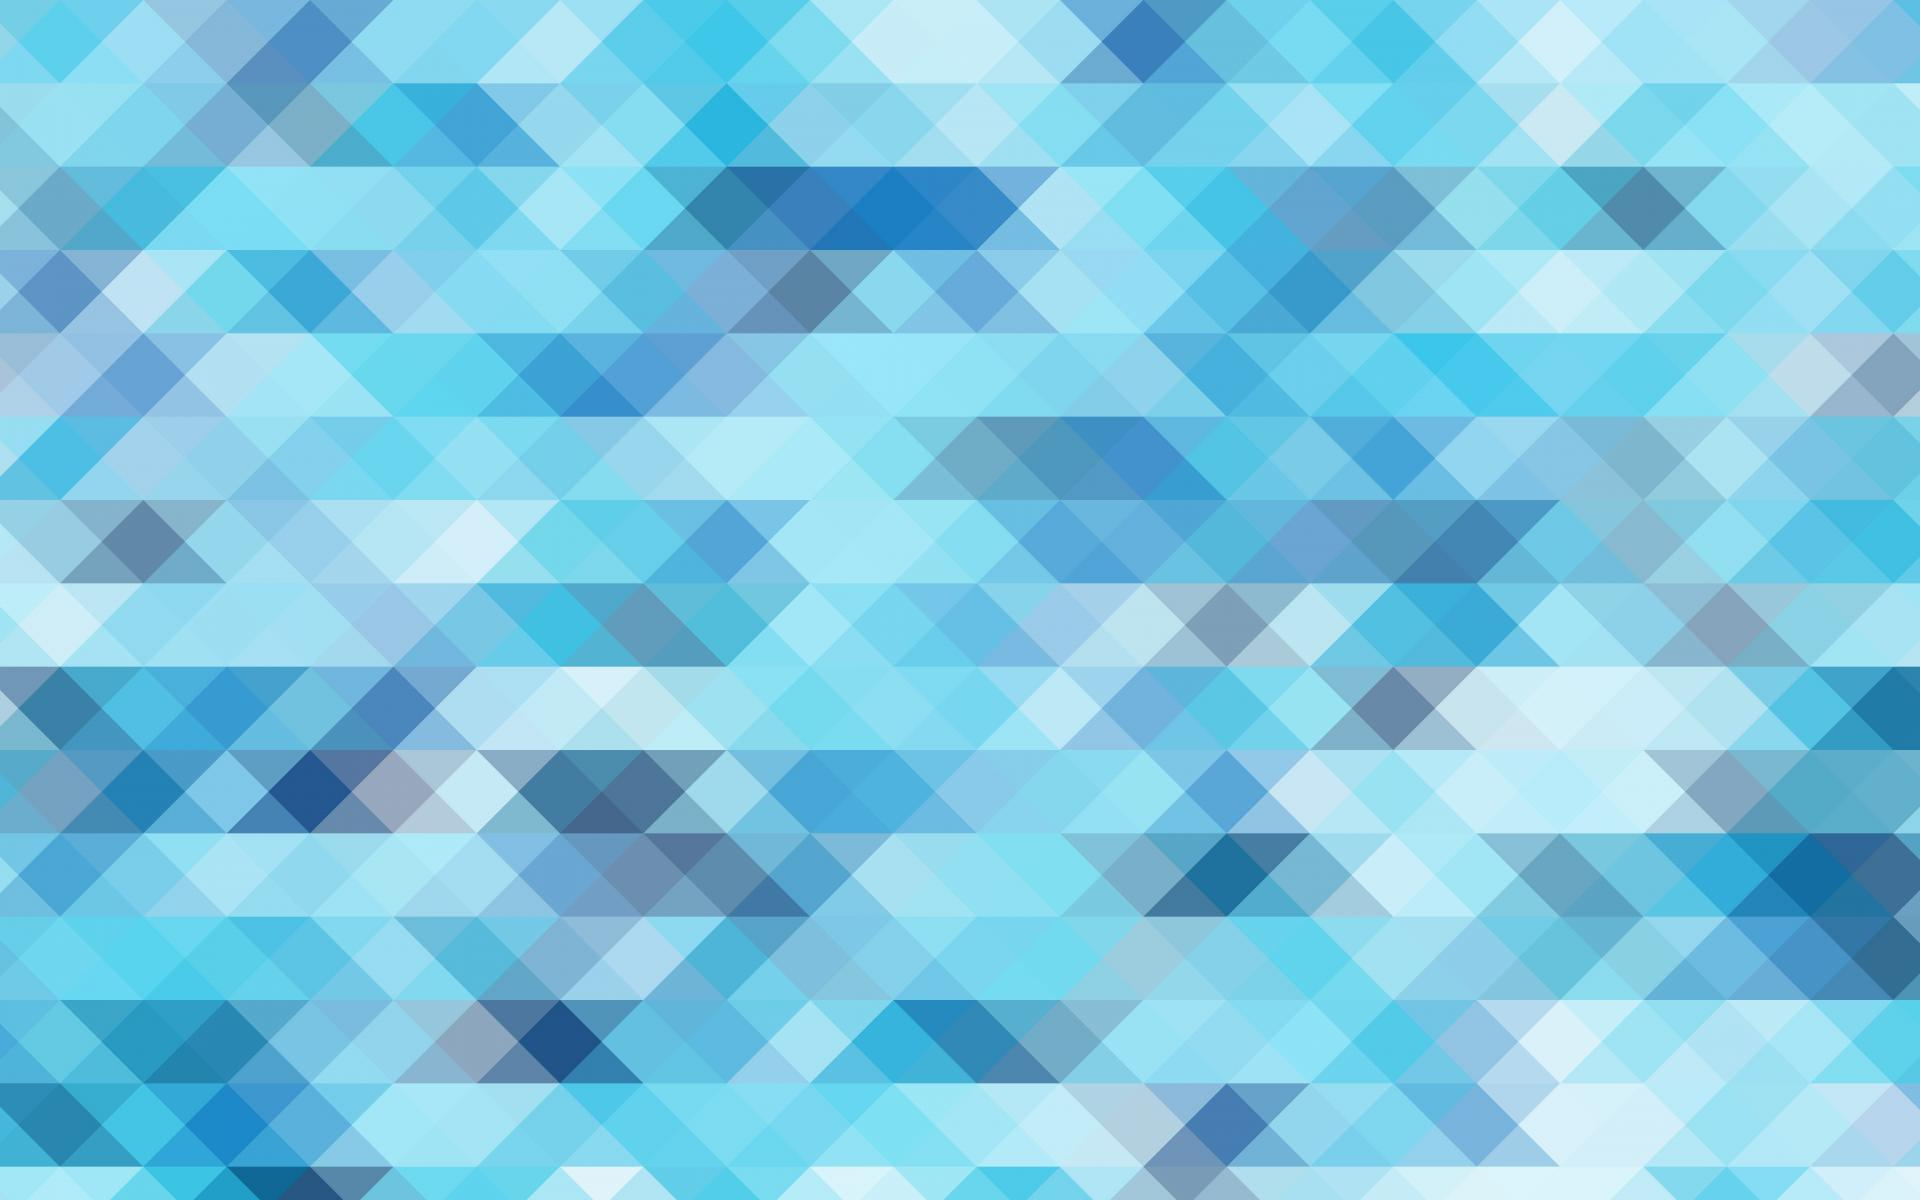 Diamond Pattern Wallpapers (36 Wallpapers) – Adorable ...